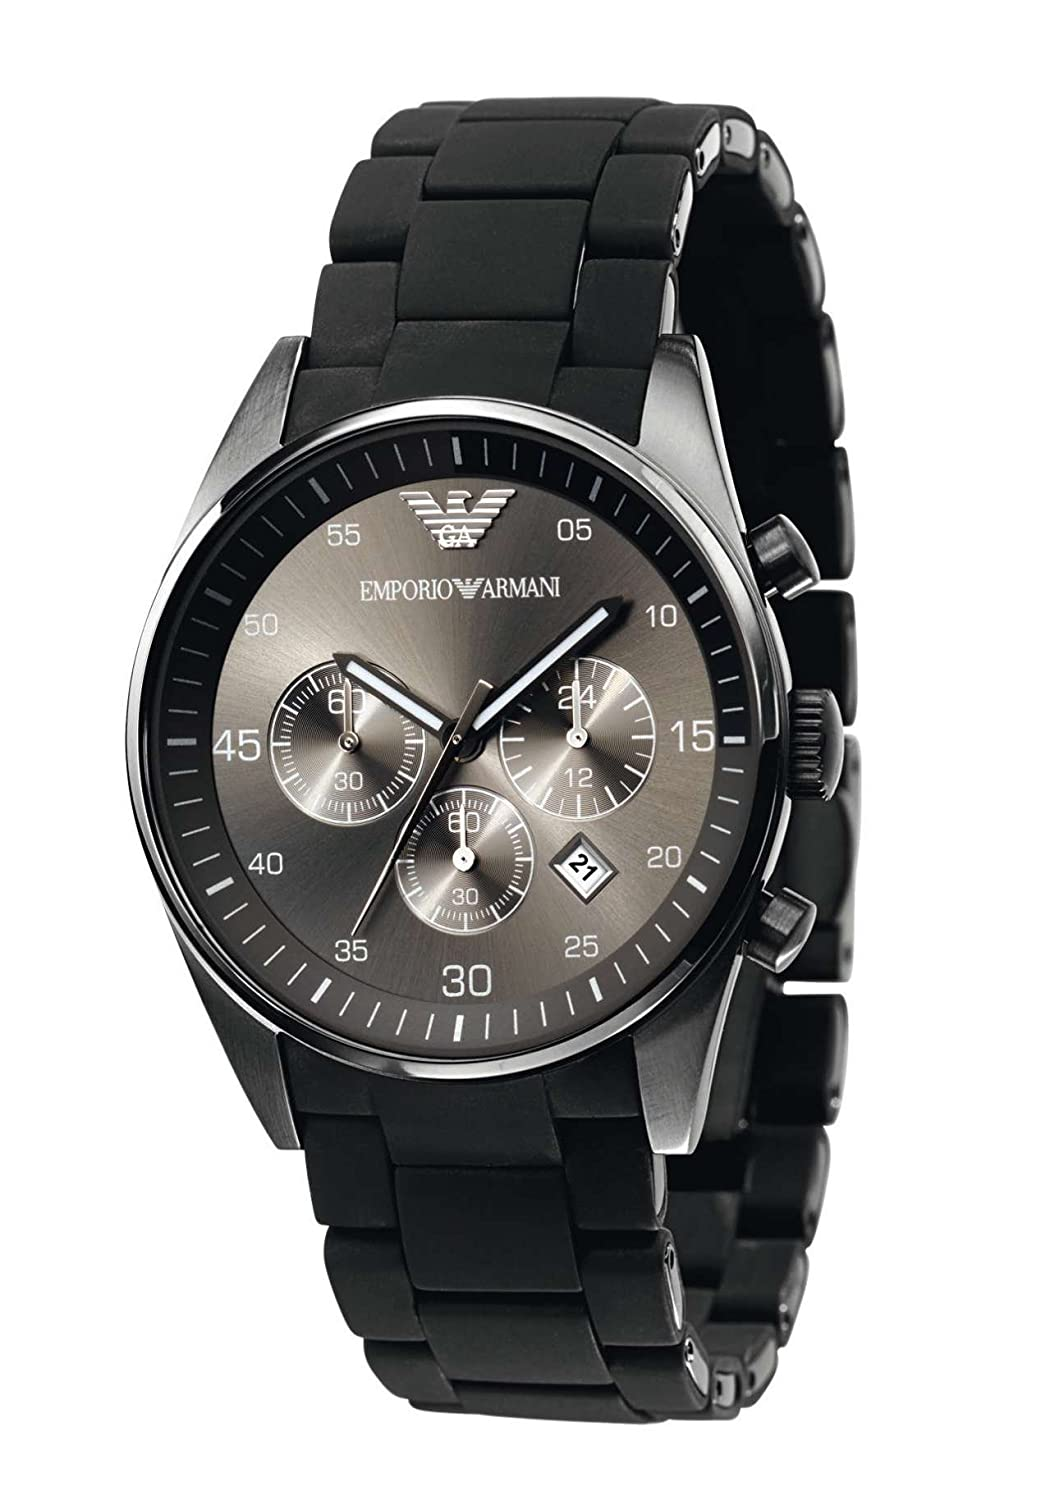 buying new exquisite design sports shoes Men's Emporio Armani AR5889 Black Silicon Stainless Steel Quartz Watch